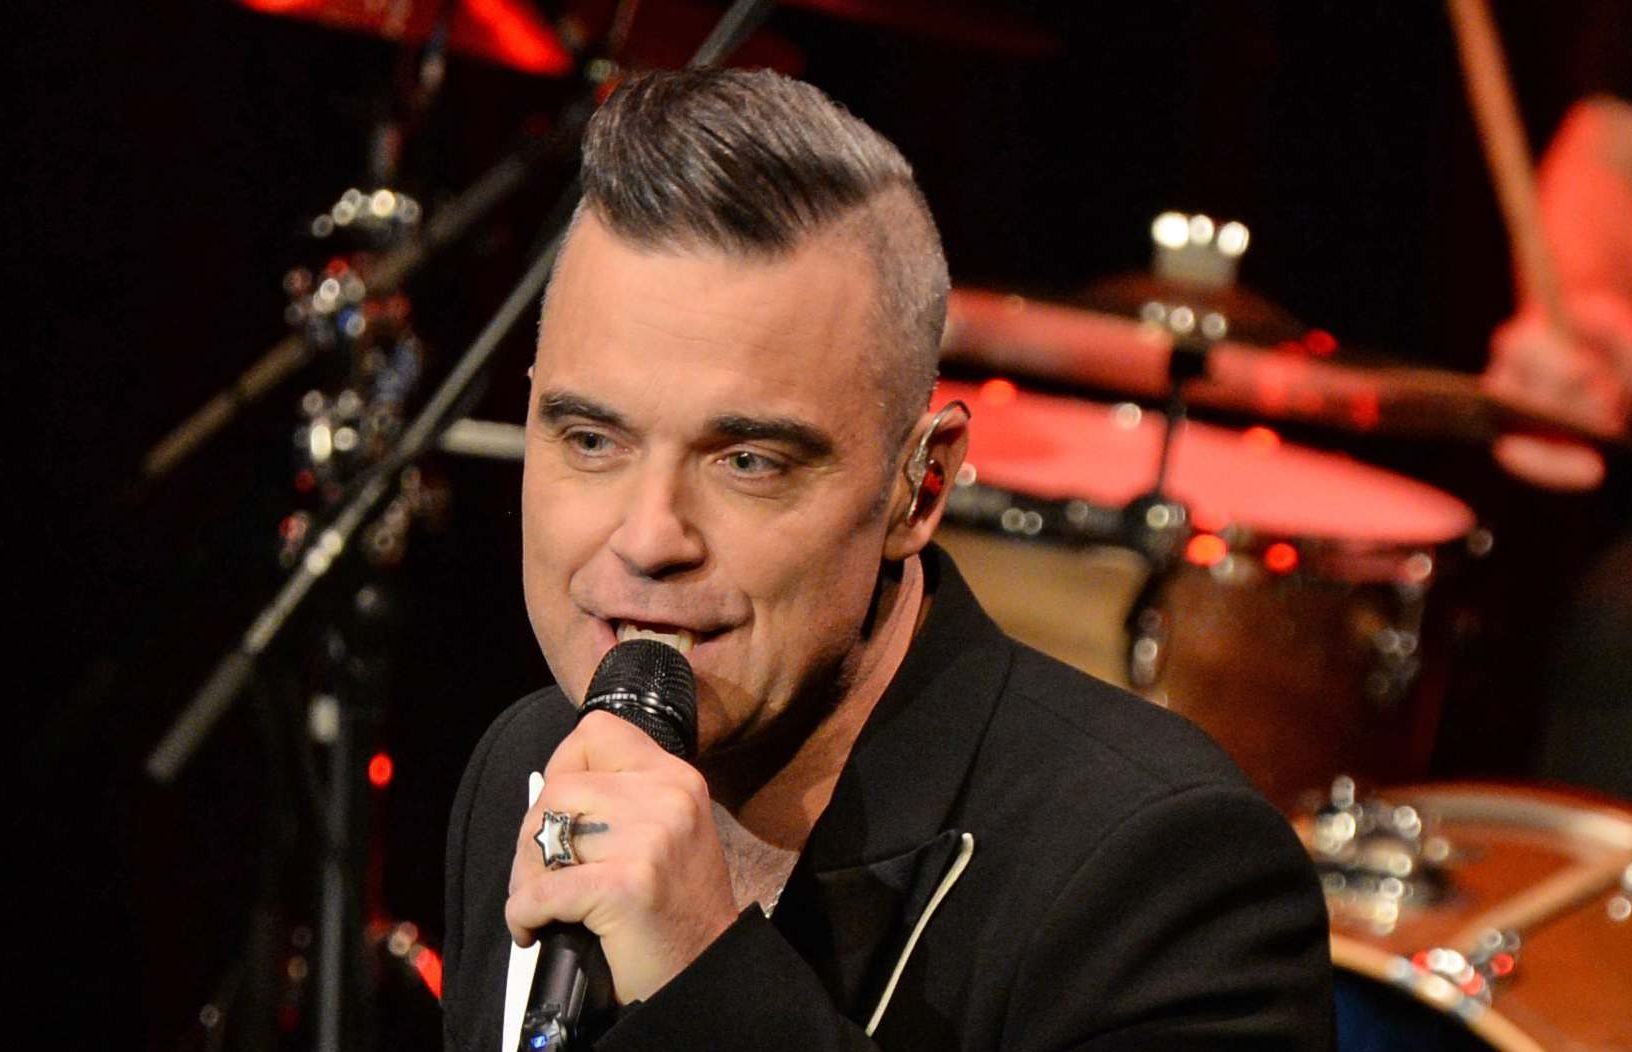 Robbie Williams: My daughter a more talented singer than me